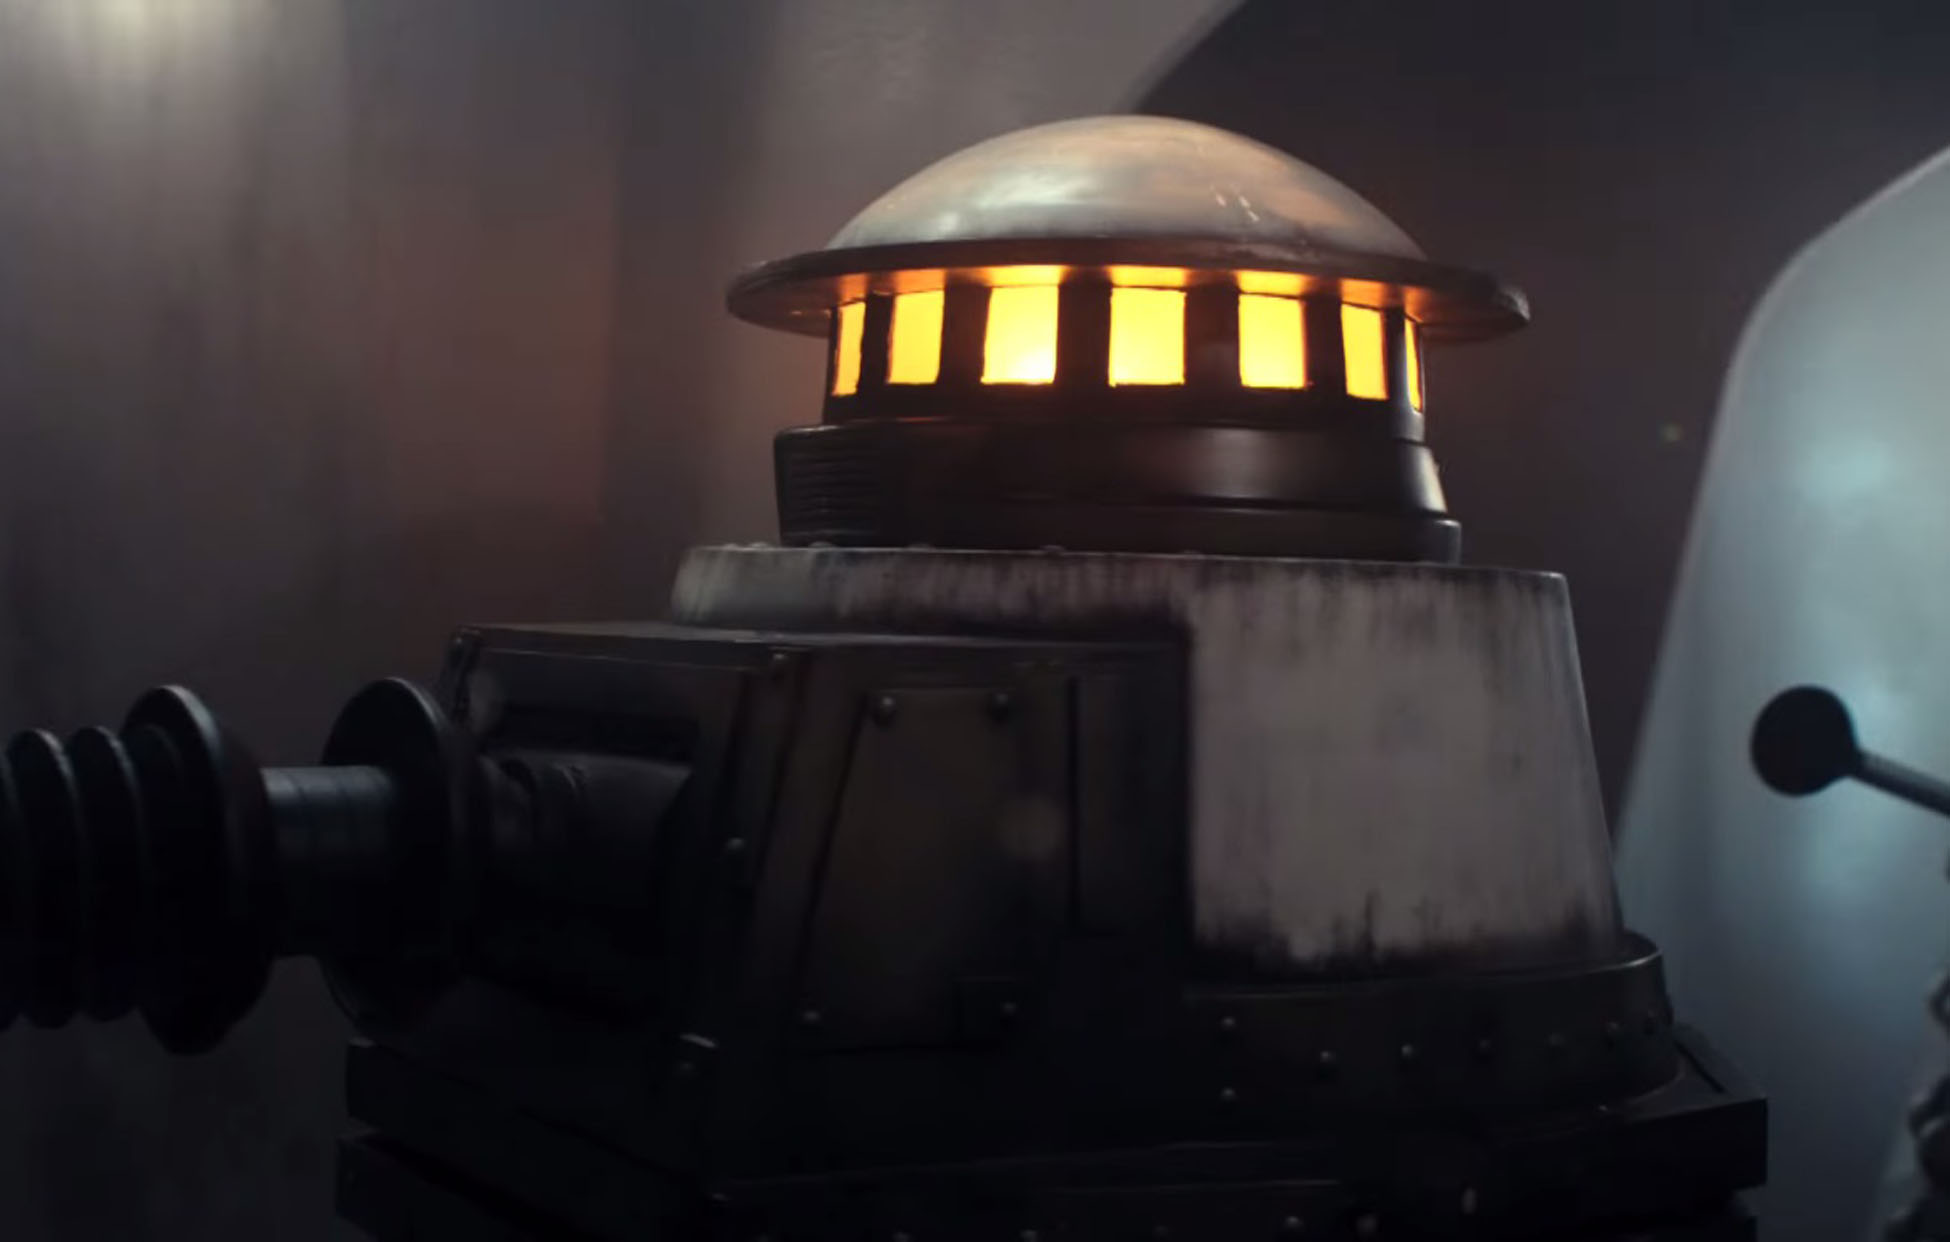 The Special Weapons Dalek as in The Witchs Familiar